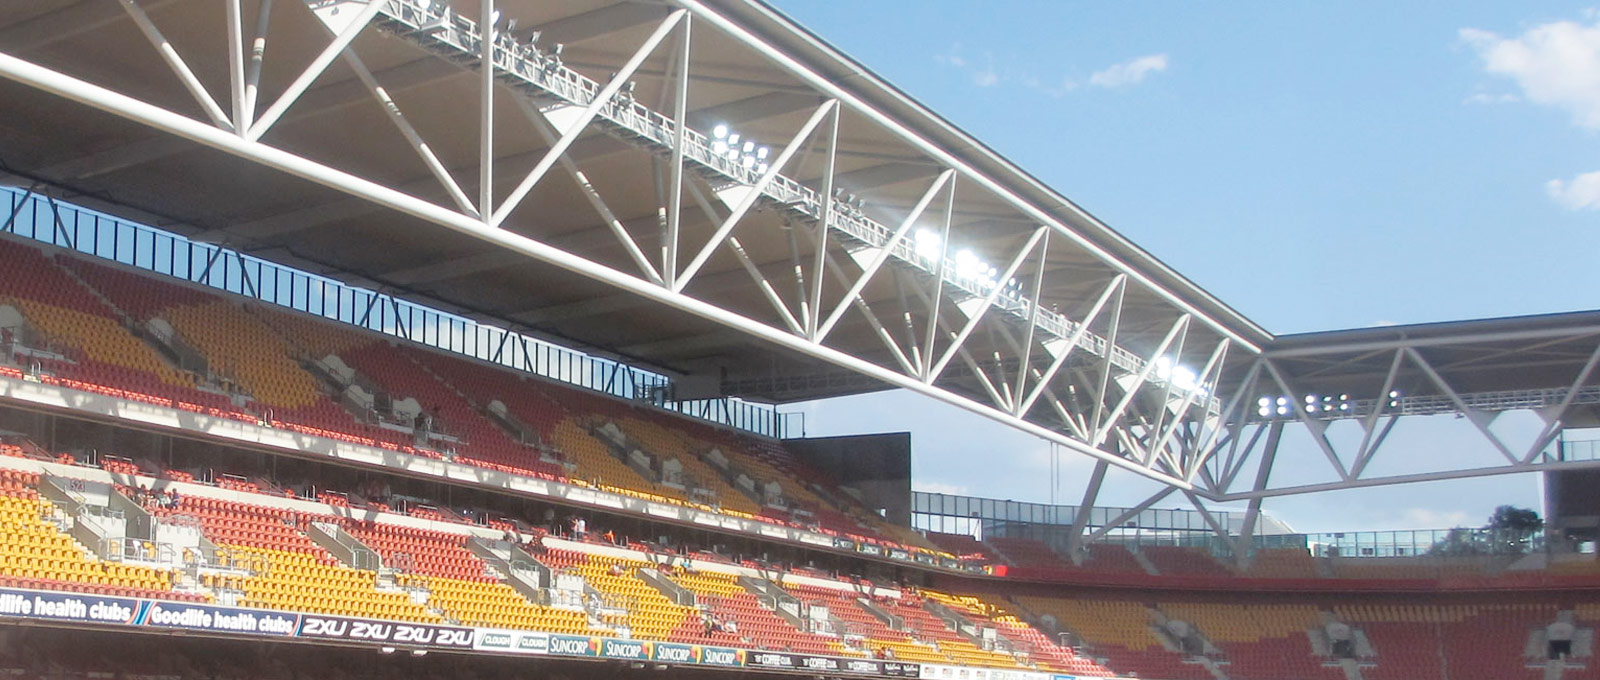 Suncorp-Stadium-Sun-Engineering-Commercial-Construction-Australia-Projects